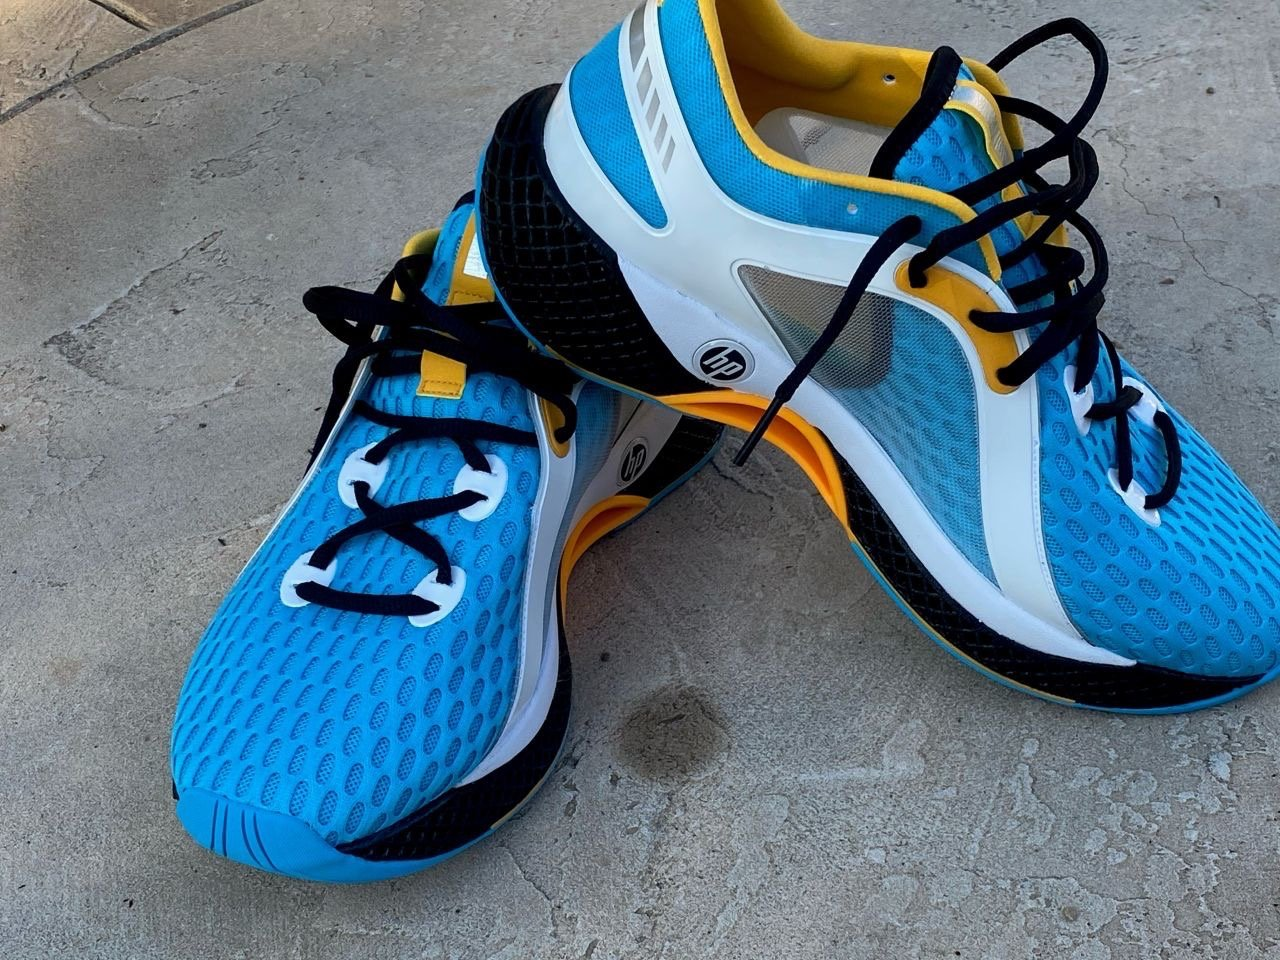 HP-branded running shoes